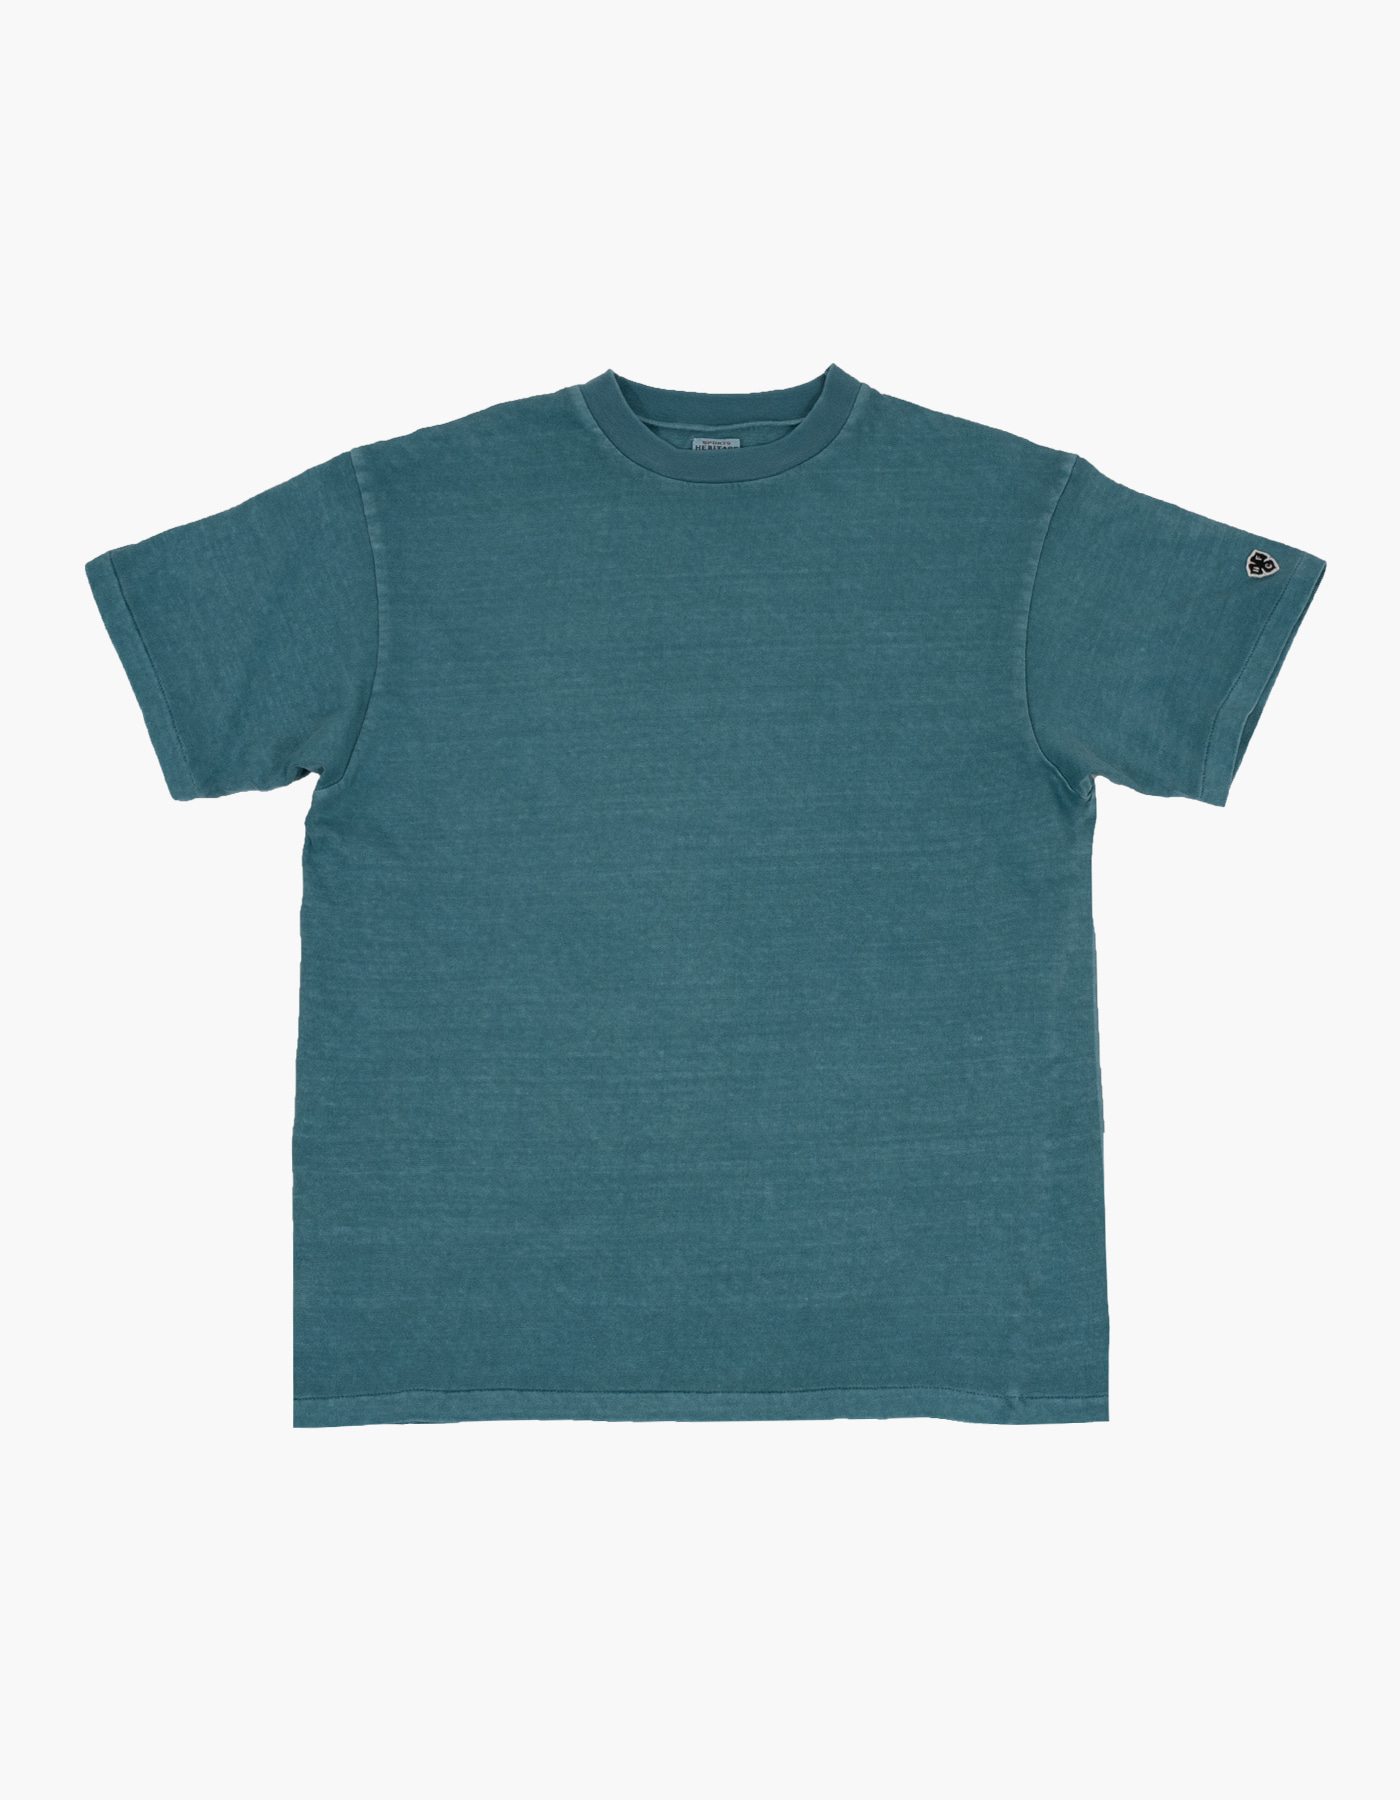 PIGMENT COMPACT YARN T-SHIRTS / OCEAN BLUE